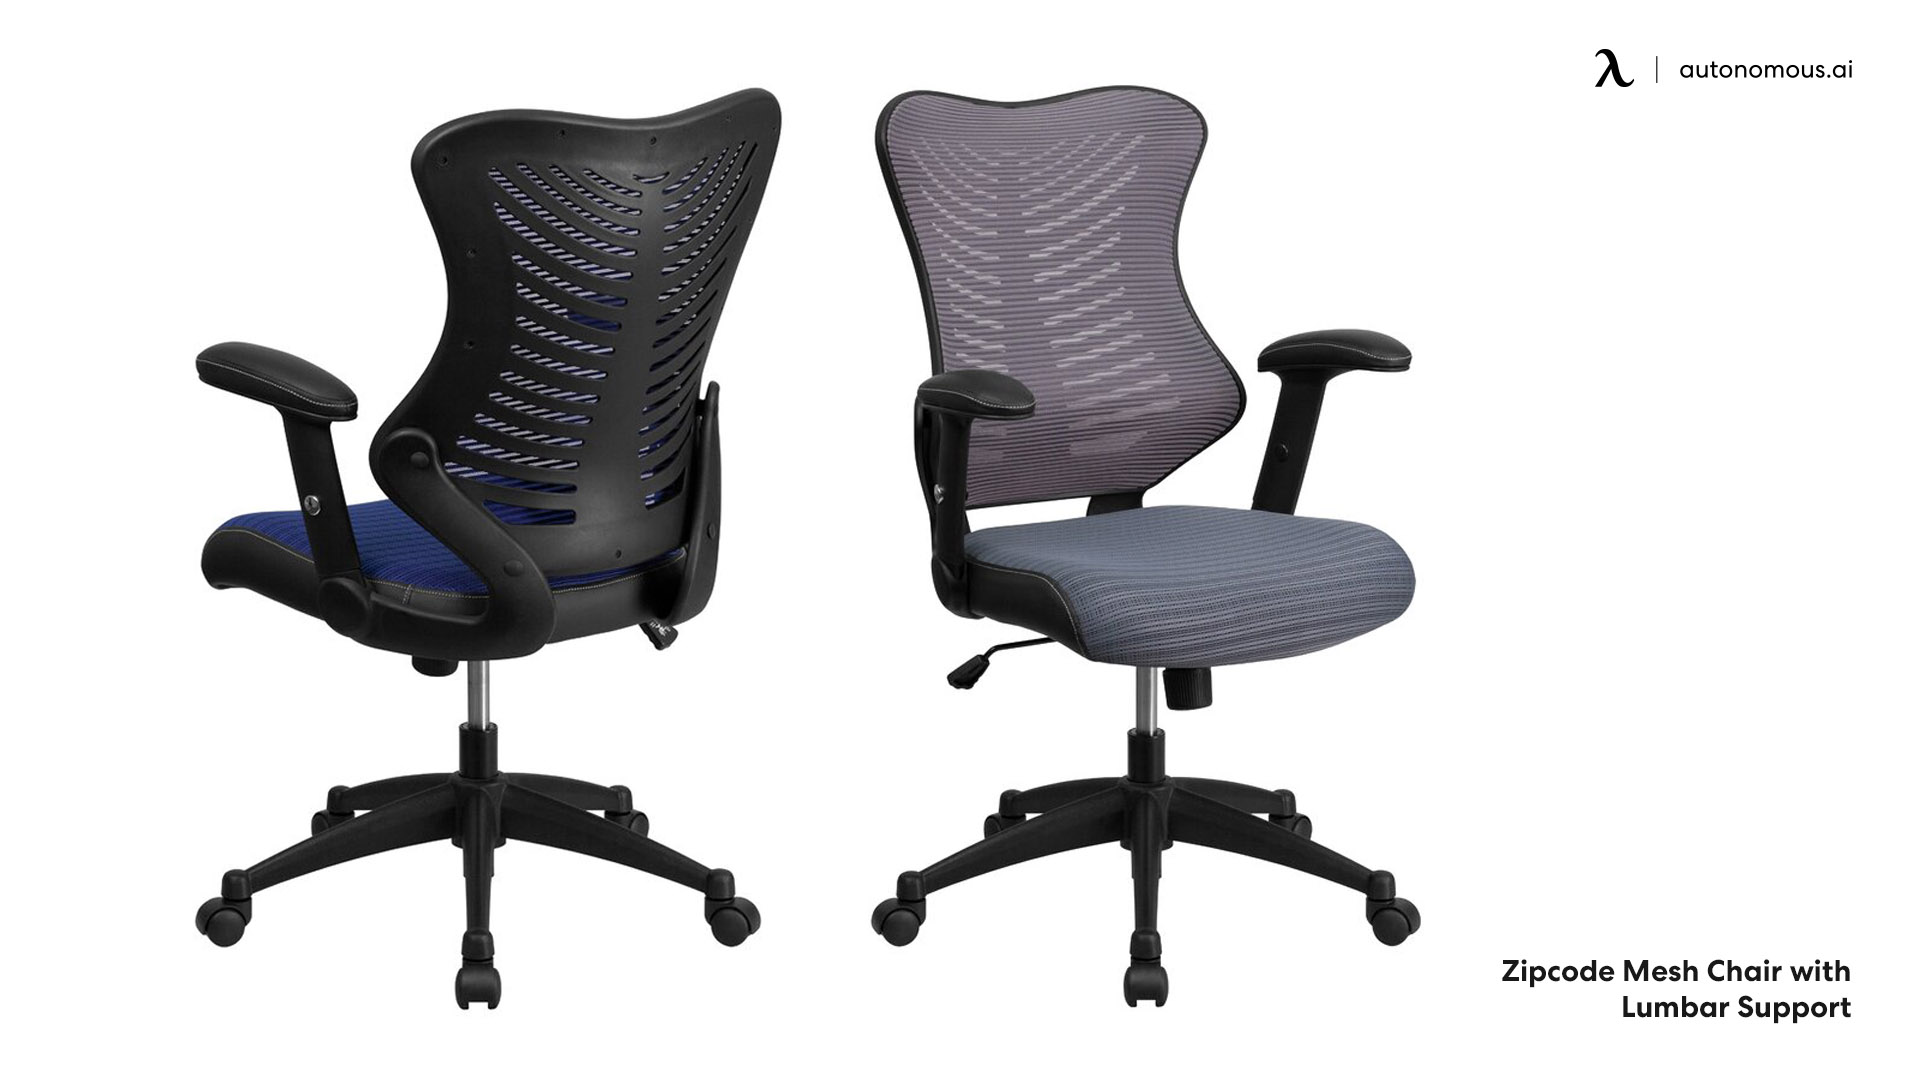 Mesh chair with lumbar support